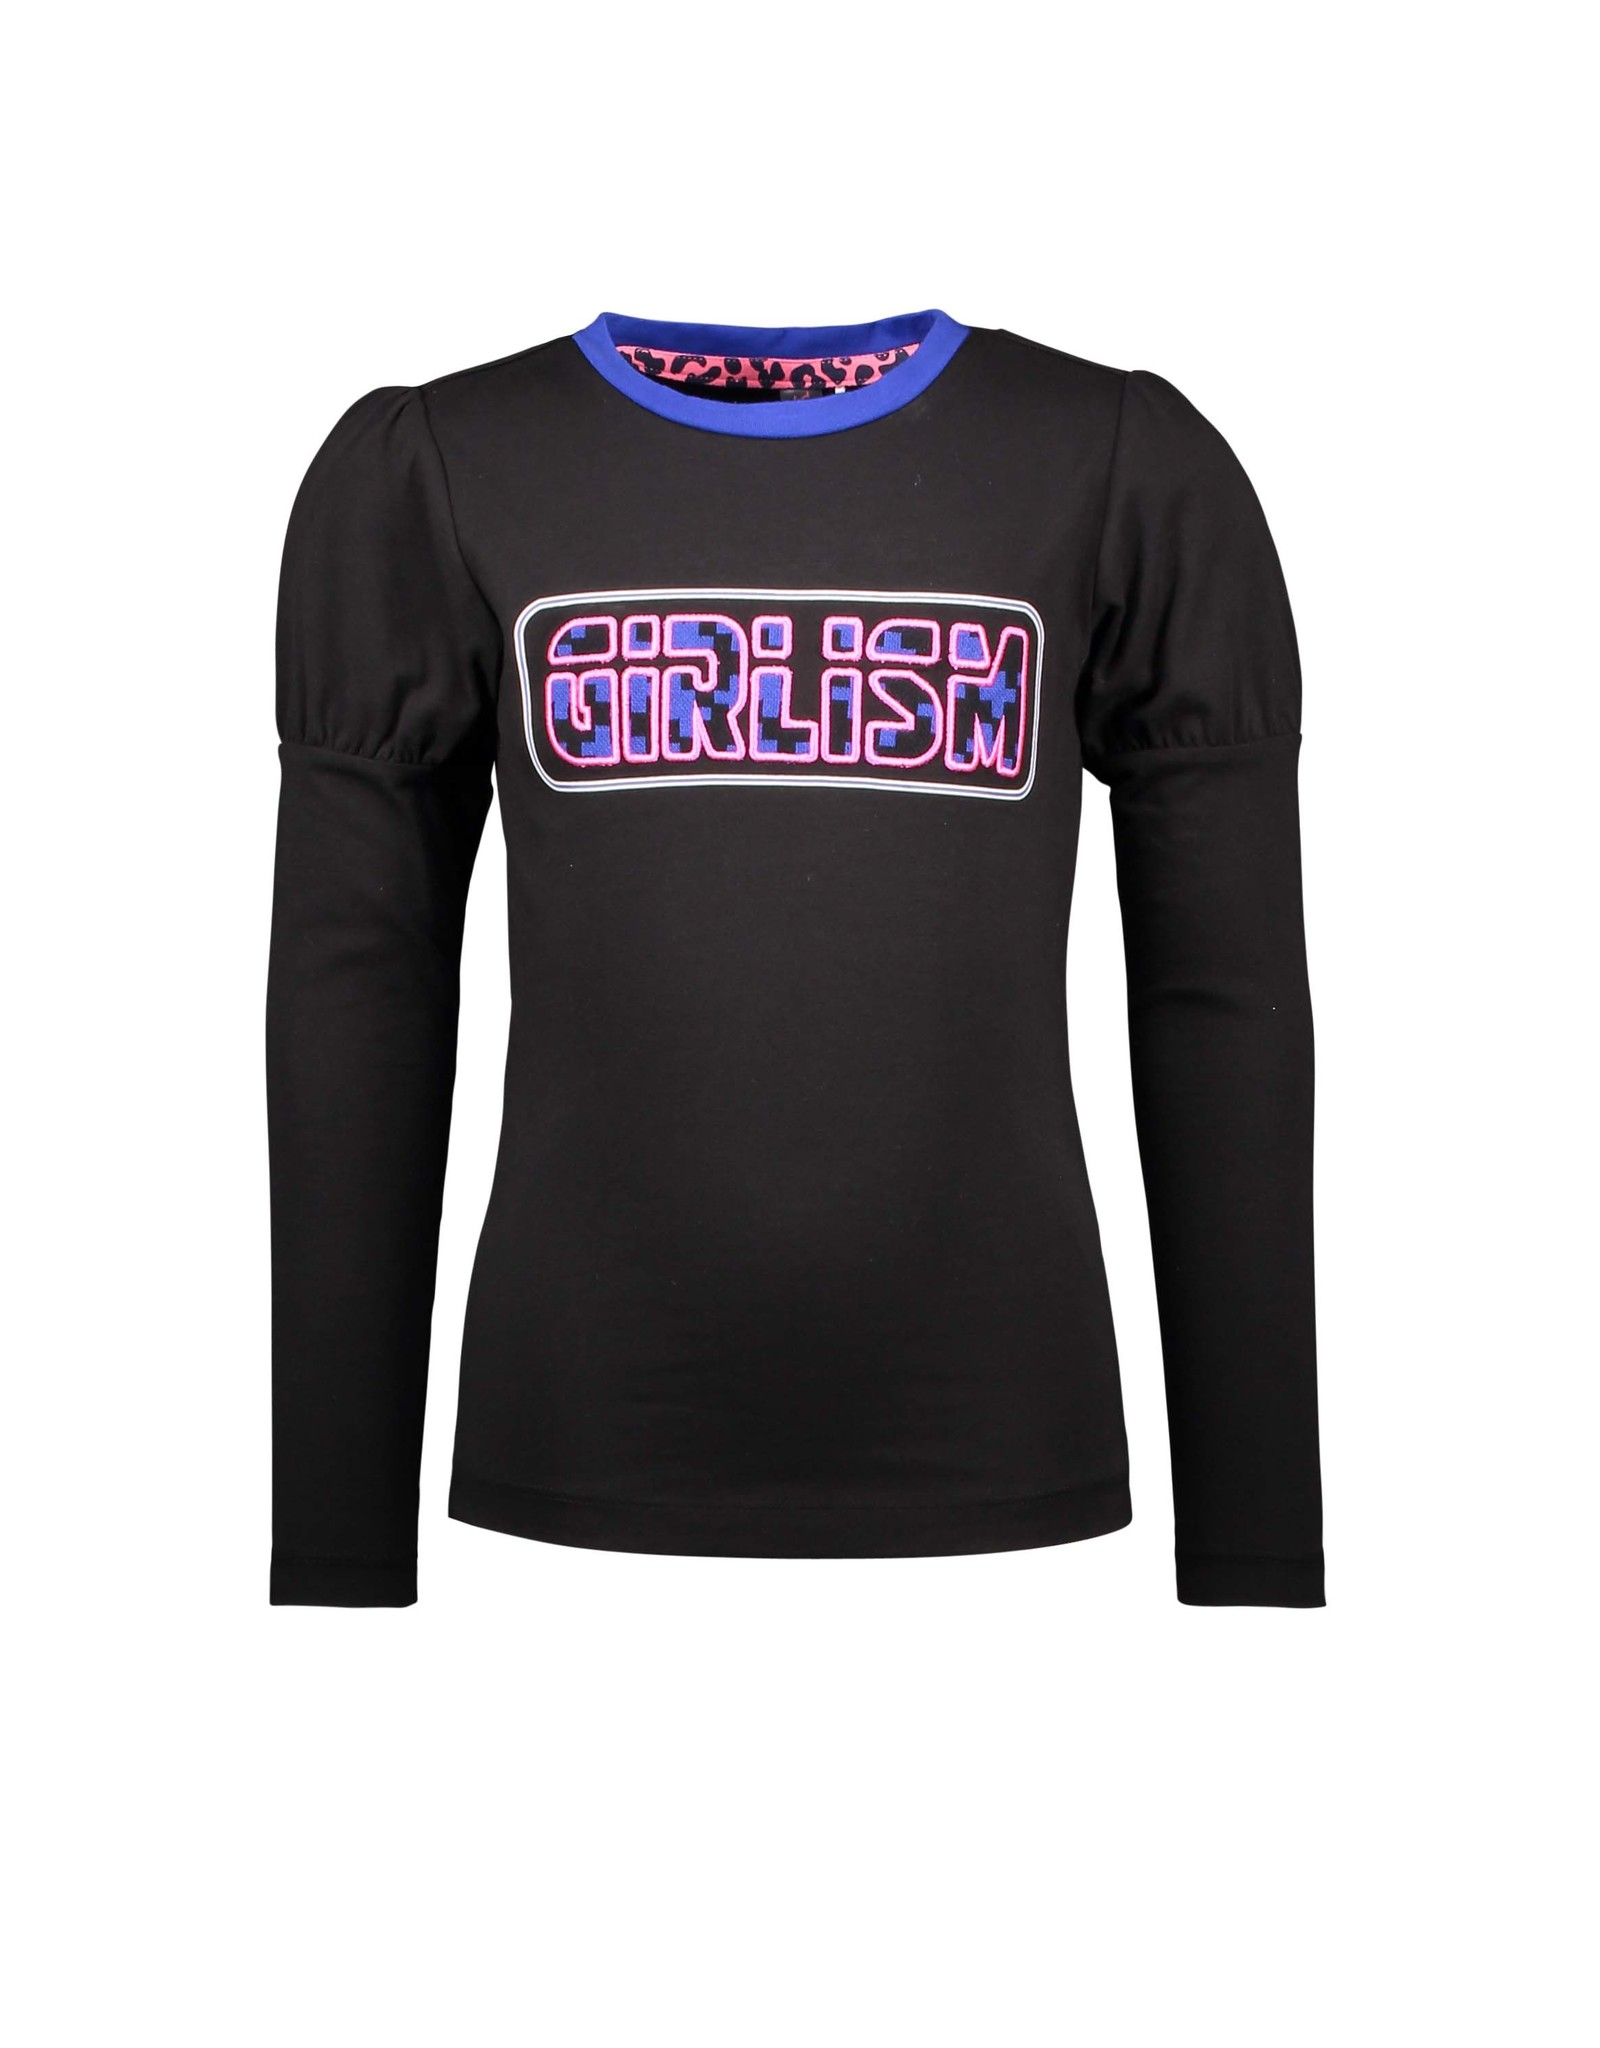 B-Nosy Girls t-shirt with puffed sleeves and chest artwork, Black